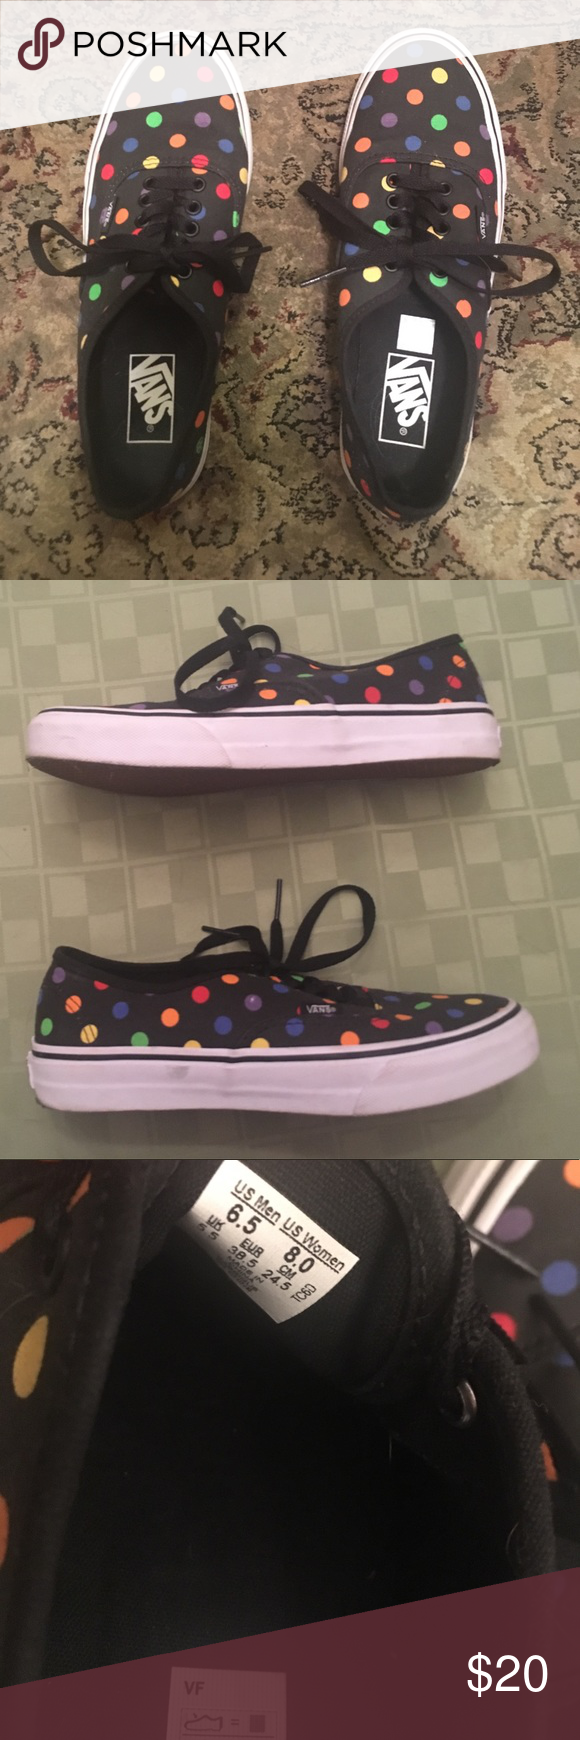 ad7badbf64 Vans Authentic Slim Polka Dot slim authentic vans in rainbow dot - worn a  couple times - back of sole is black from pavement but can be wiped off -  women s ...